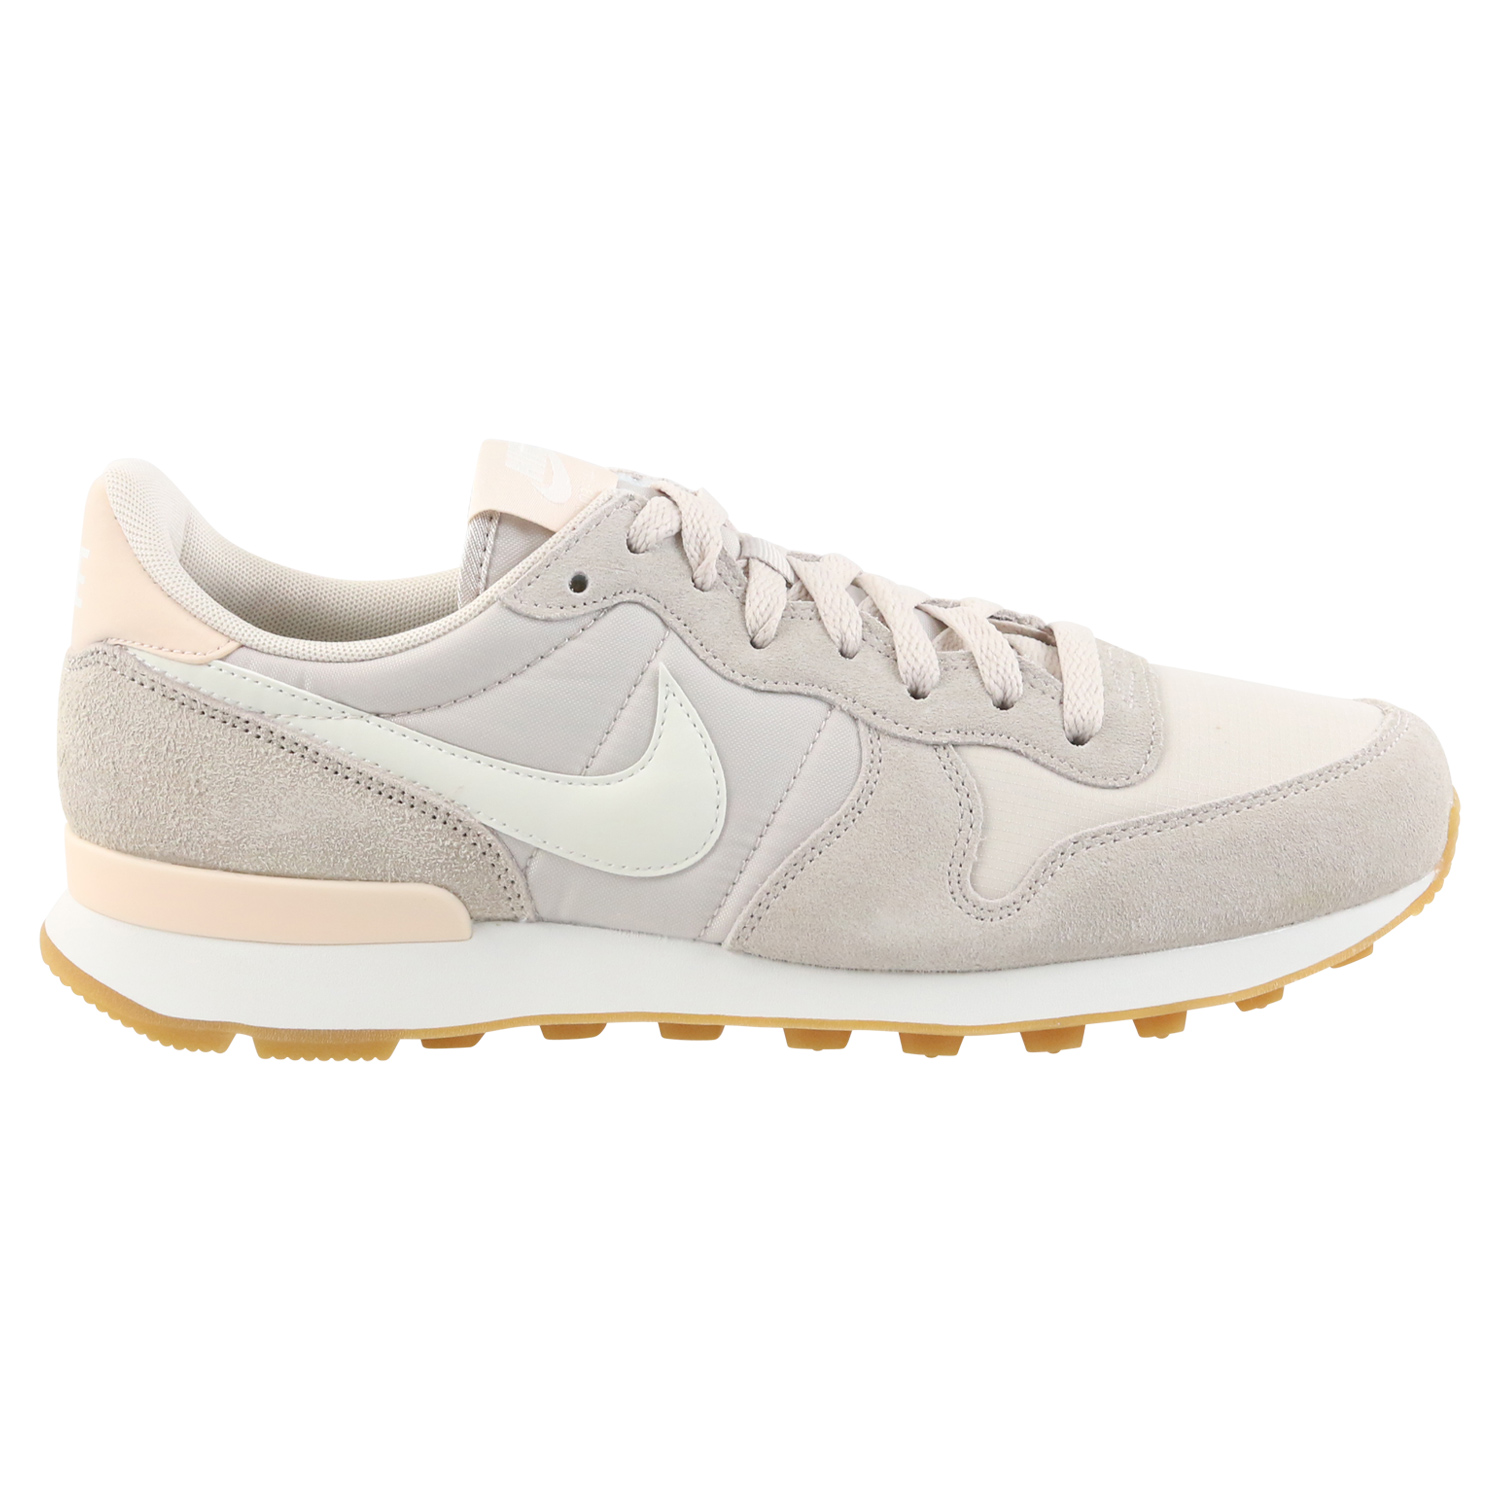 Nike Internationalist Sneaker Damen Schuhe Low Top Beige 828407 028 ...